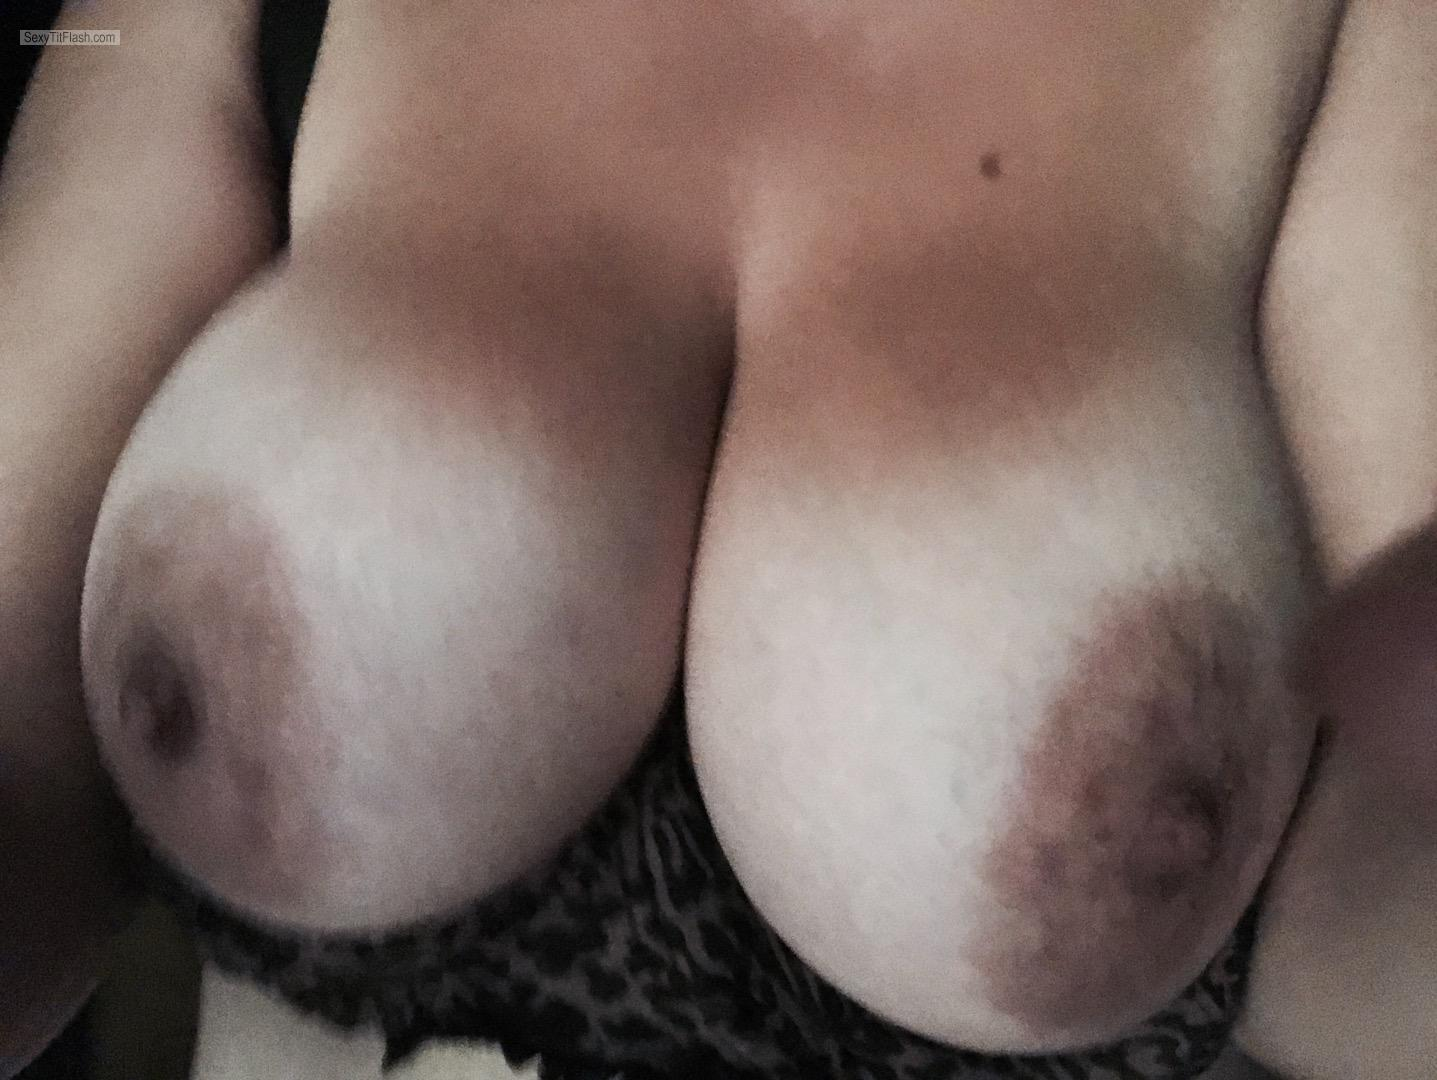 My Very big Tits Selfie by Morning Tits